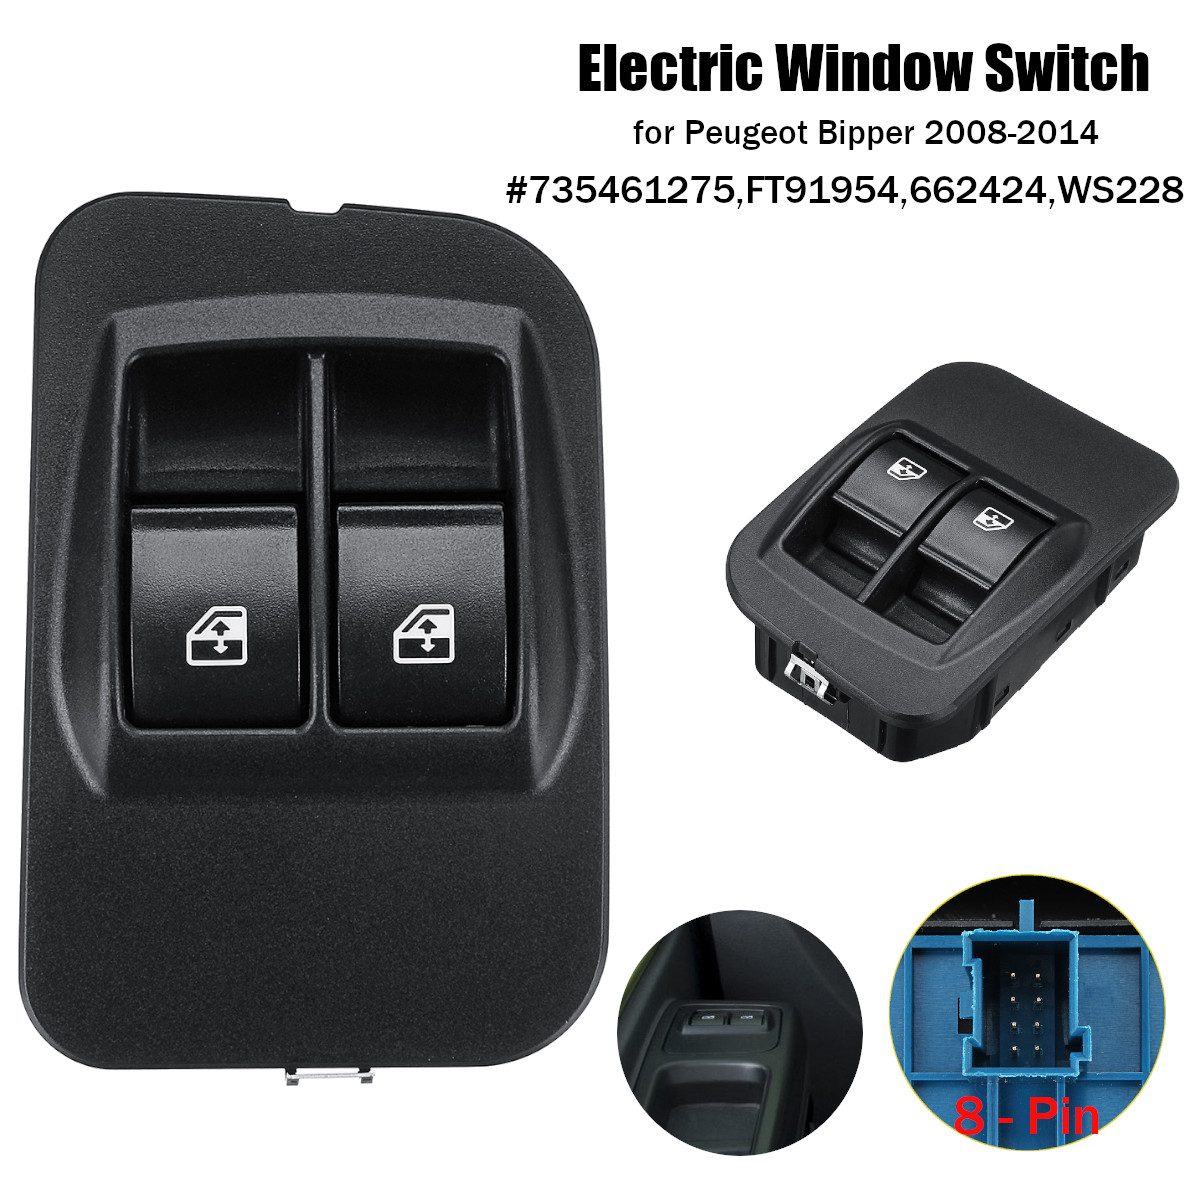 Electric Window Control Switch 4 Pin Fits Peugeot Bipper 2008-2014